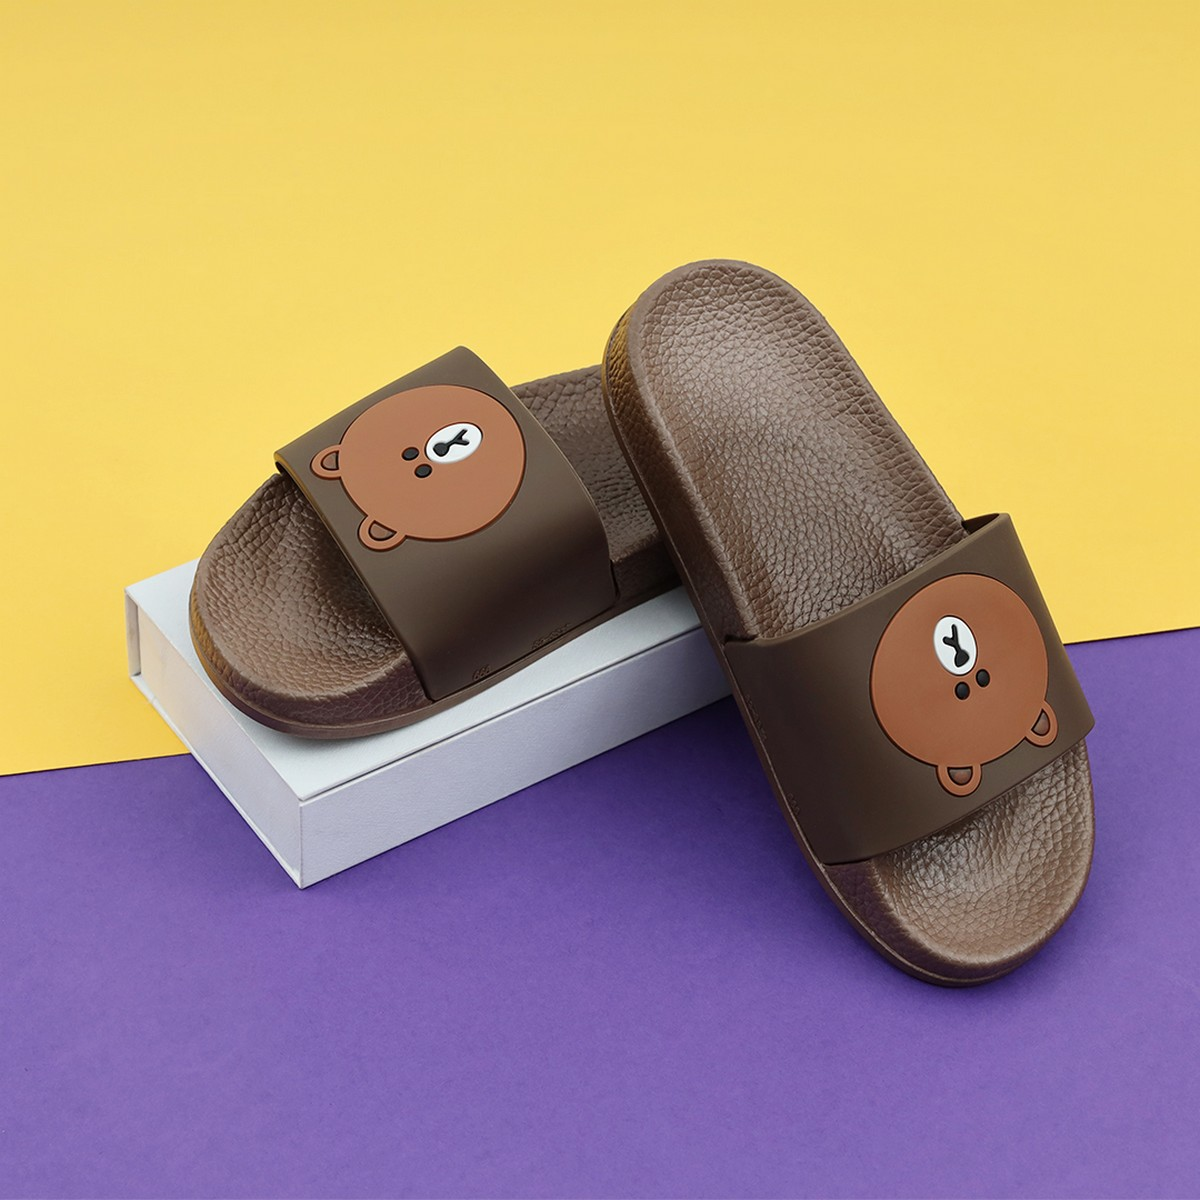 Teddy Bear Kids Slippers- High Quality House Slippers for Boys and Girls- Dark Brown